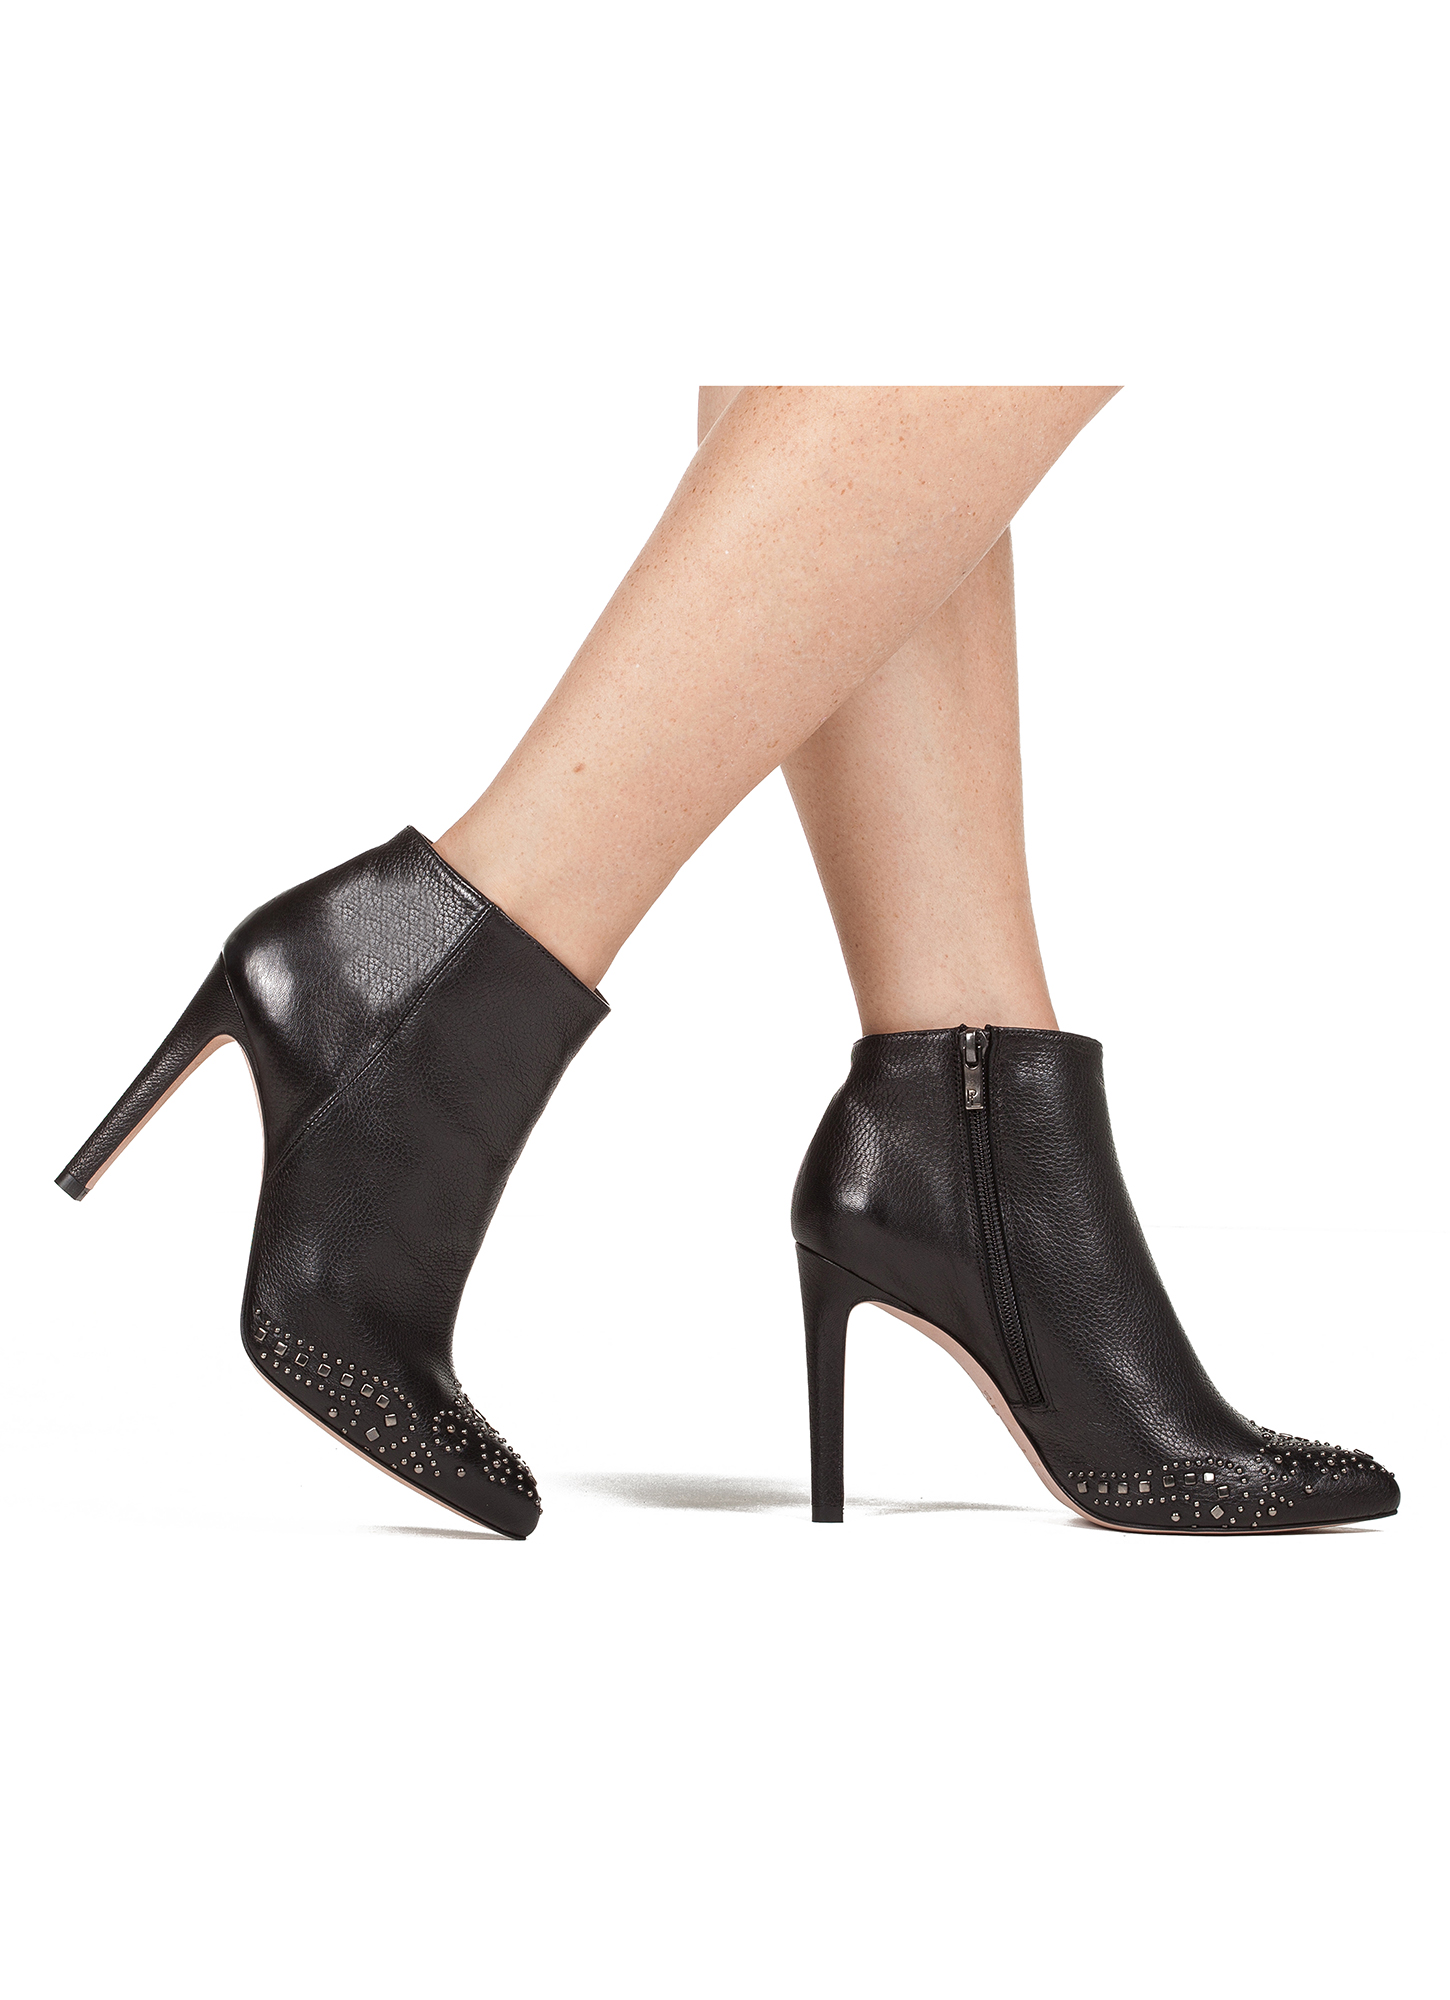 Pura Lopez High heeled boots - black